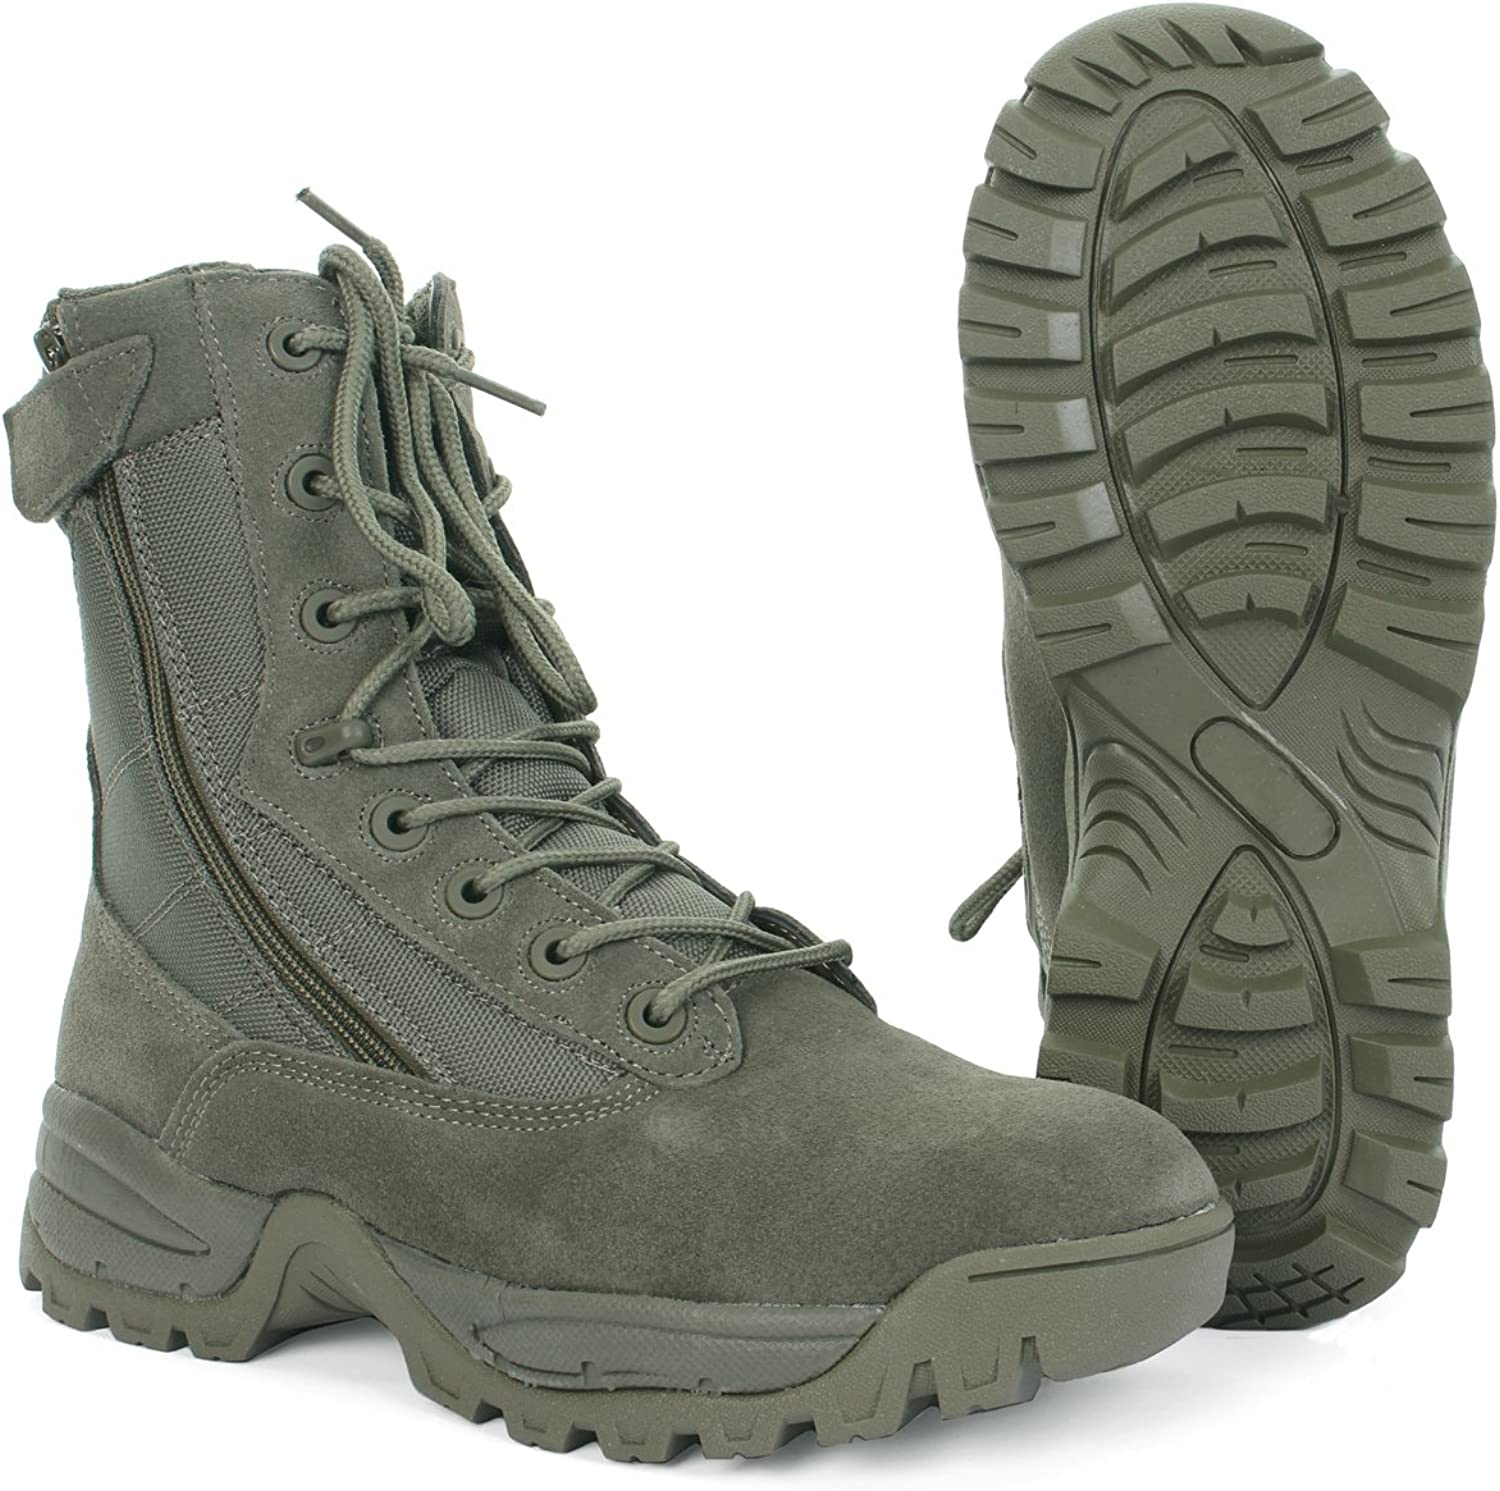 TACTICAL BOOT TWO ZIP FOLIAGE